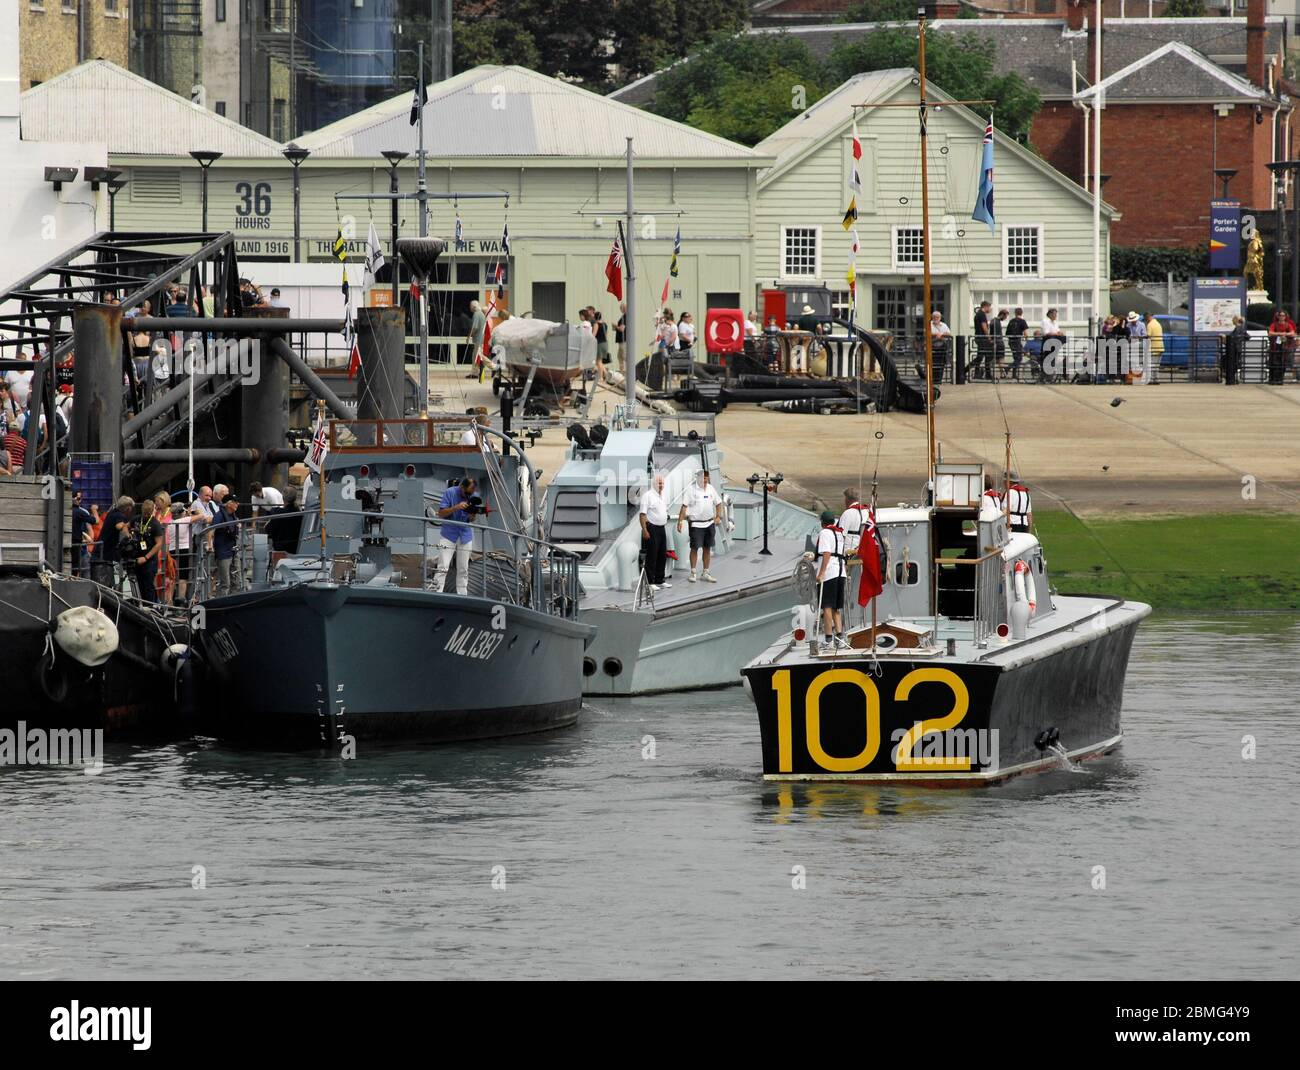 AJAXNETPHOTO. 25TH AUGUST, 2016. PORTSMOUTH, ENGLAND. - COASTAL FORCES 100TH ANNIVERSARY - RESTORED SECOND WORLD WAR COASTAL FORCES 'LITTLE SHIPS' FLOTILLA INCLUDING HARBOUR DEFENCE MOTOR LAUNCH MEDUSA, MGB 81, HSL 102 MOORING UP AT THE PNBPT BERTH OPPOSITE HMS WARRIOR. PHOTO:JONATHAN EASTLAND/AJAXREF:D162508 6194 Stock Photo